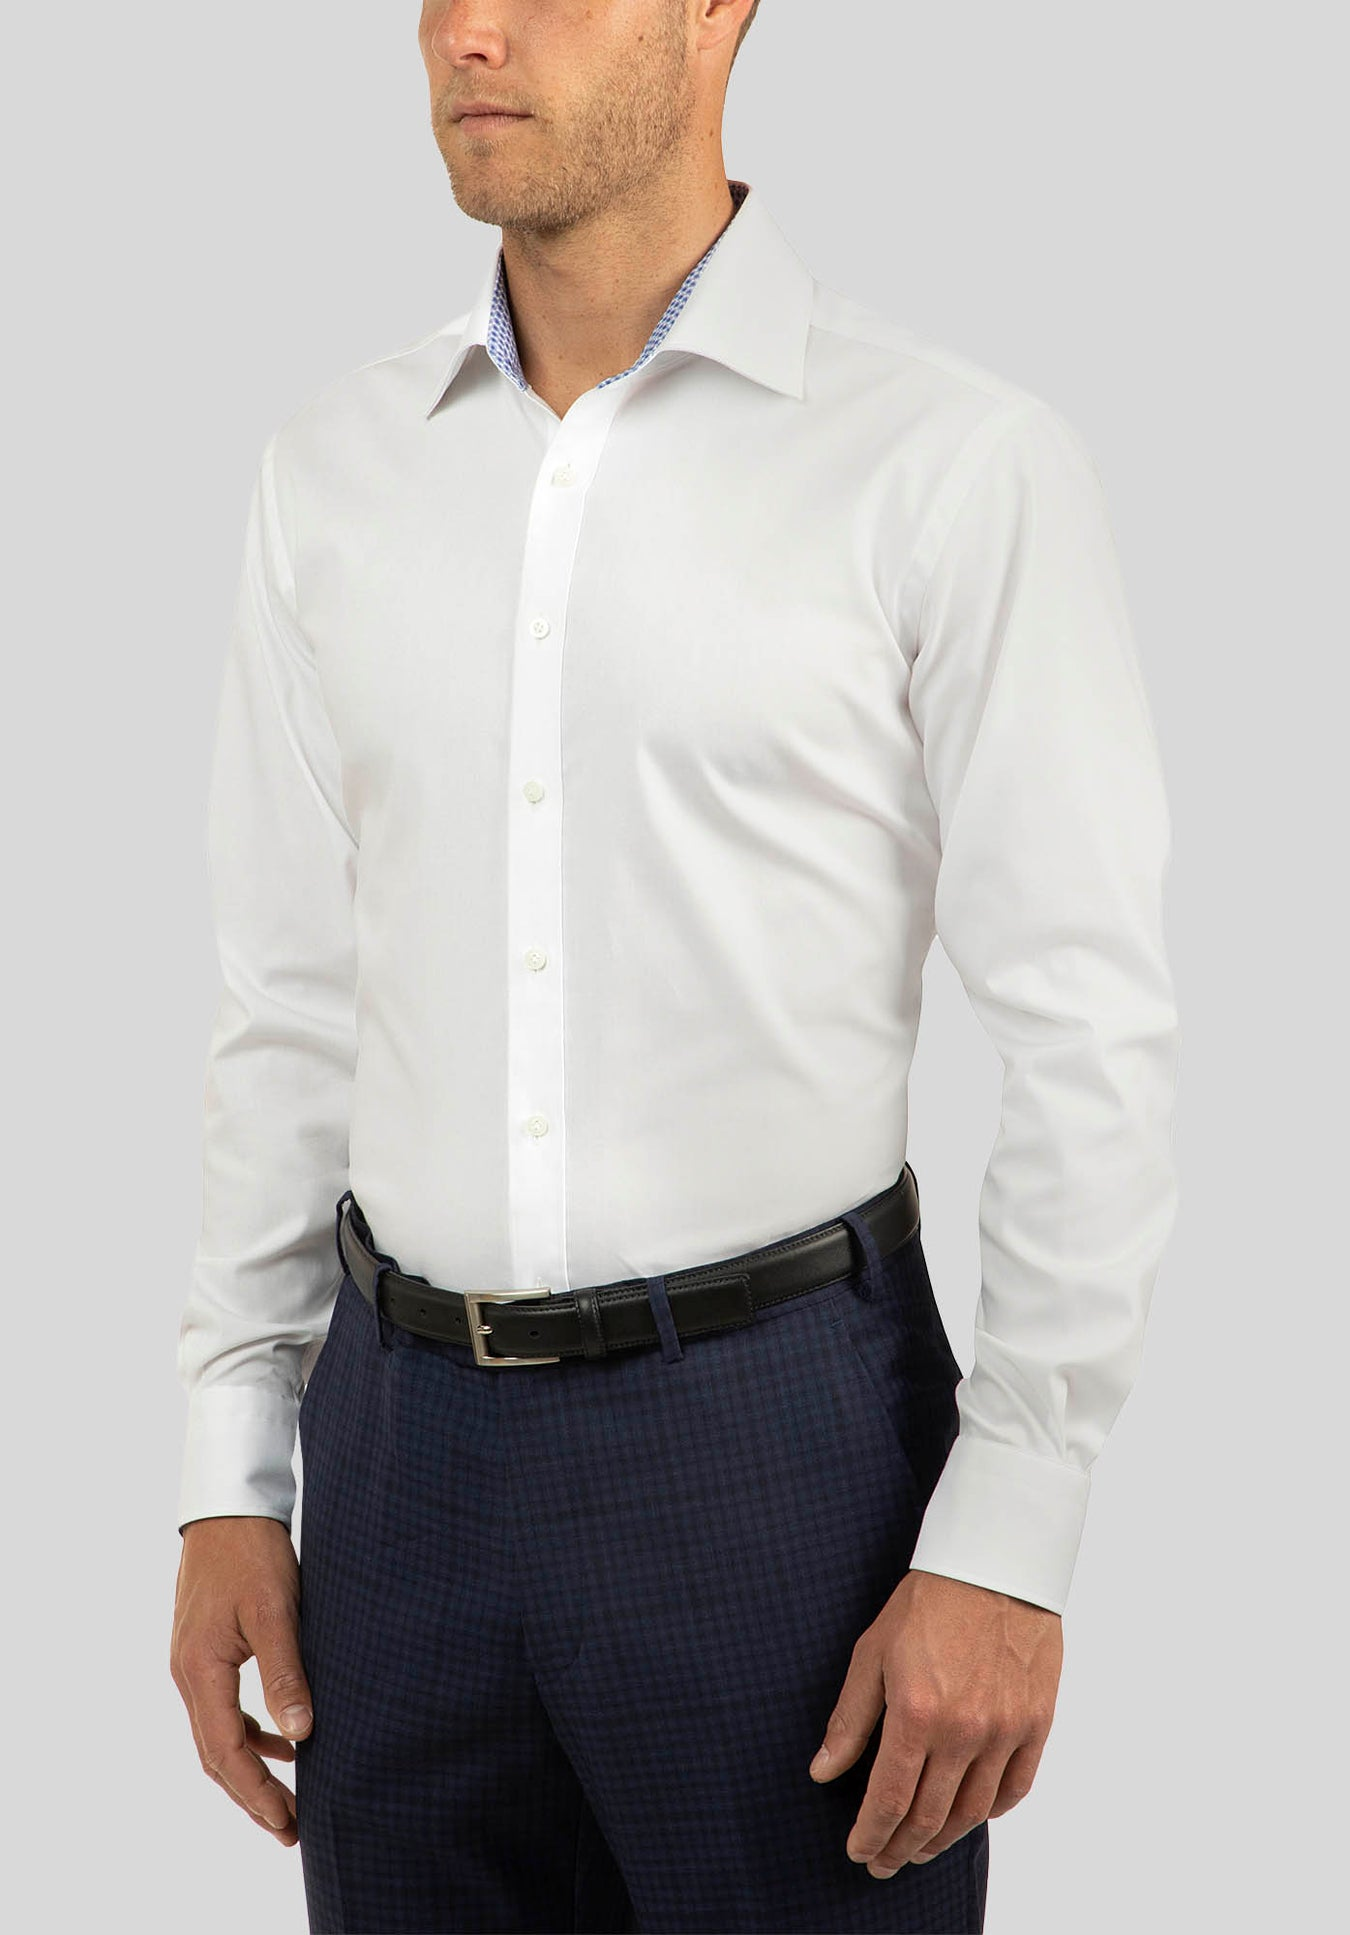 CARLTON SHIRT FCJ356 - White